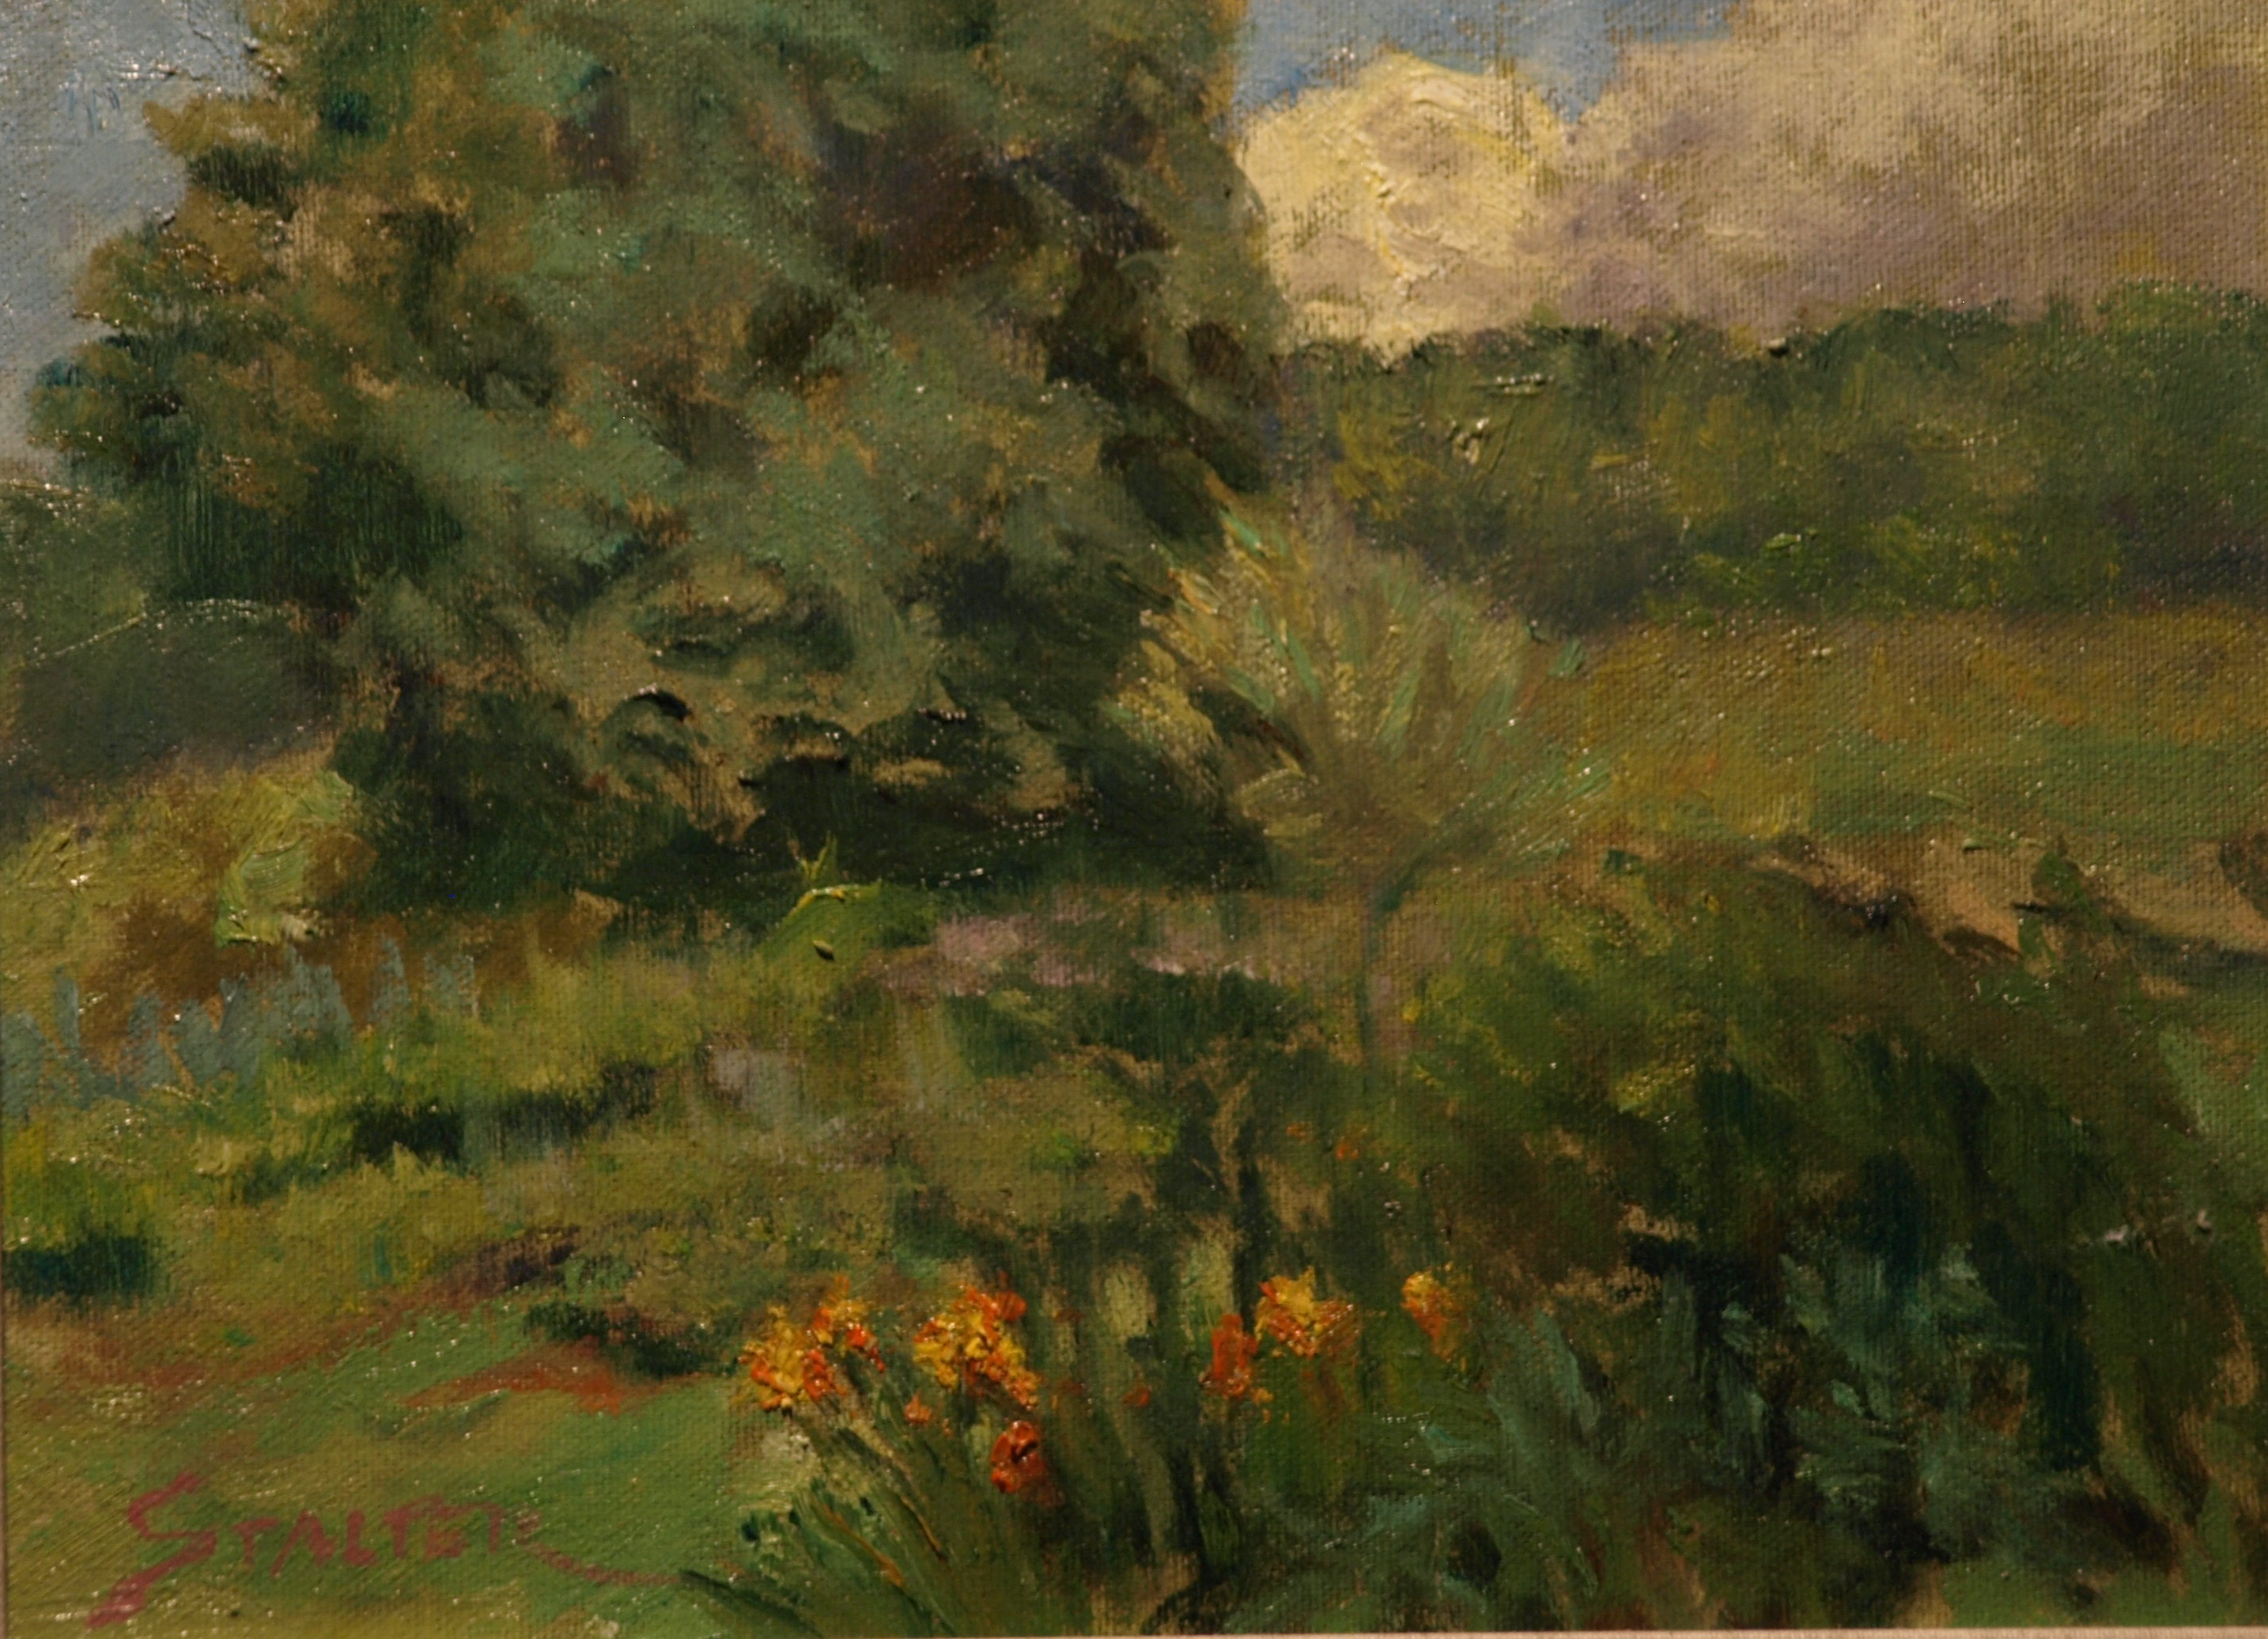 Daylillies, Oil on Canvas on Panel, 9 x 12 Inches, by Richard Stalter, $225